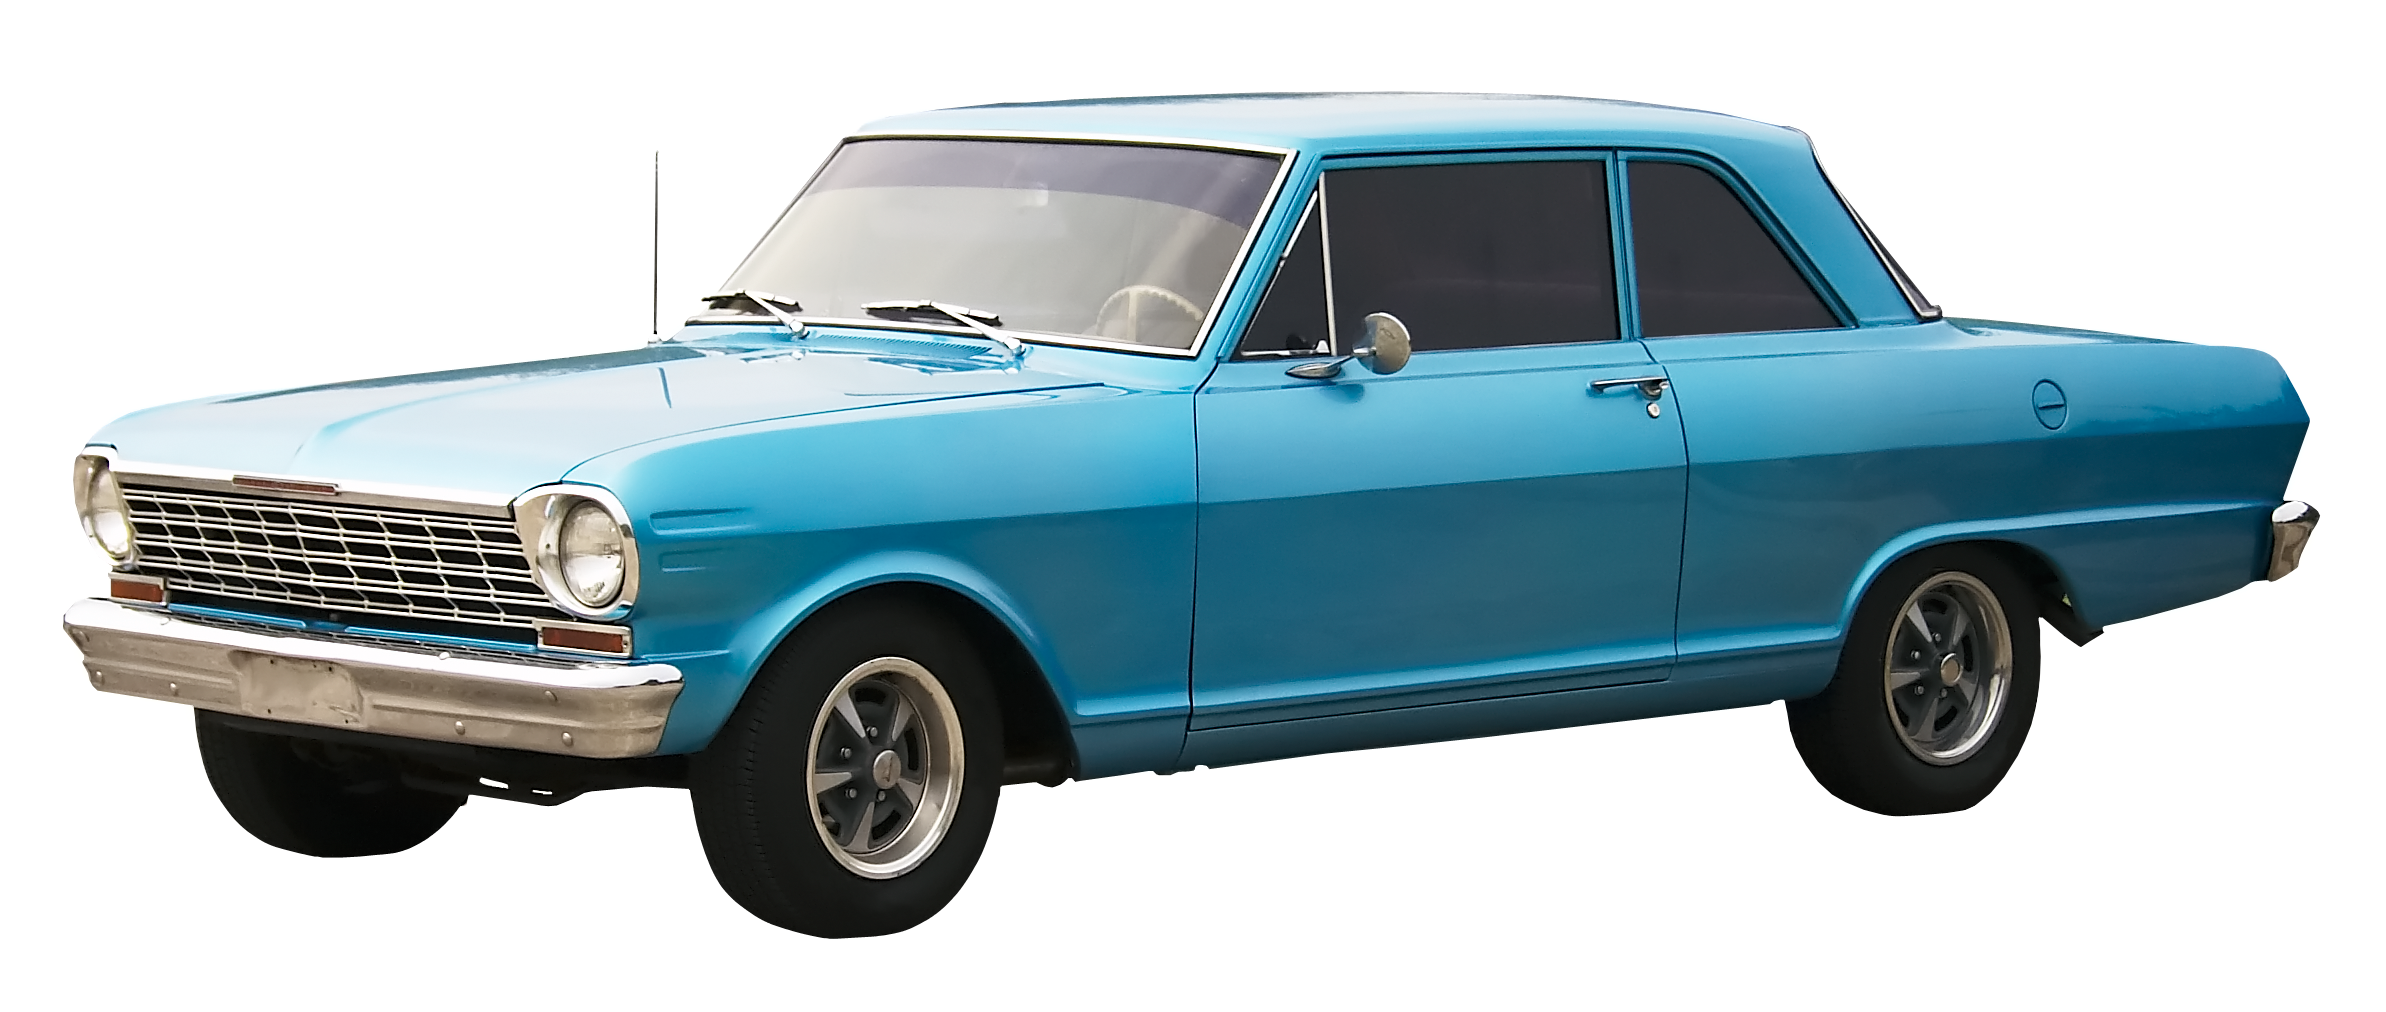 What is a classic car value blue book? Referencecom